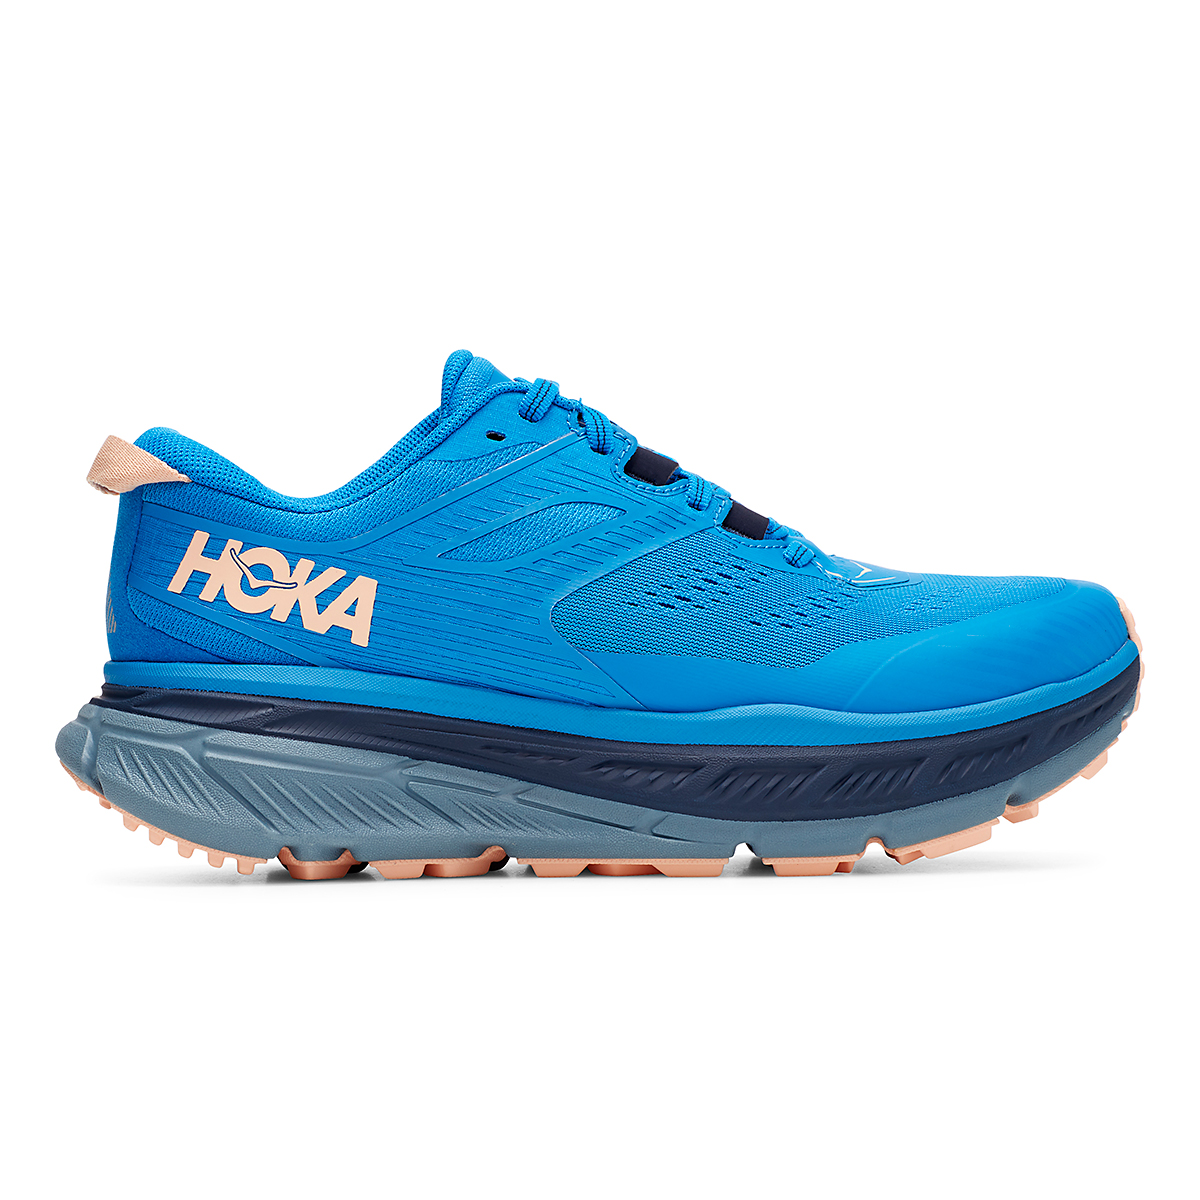 Women's Hoka One One Stinson Atr 6 Trail Running Shoe - Color: Indigo Bunting/Bleached Apricot - Size: 5 - Width: Regular, Indigo Bunting/Bleached Apricot, large, image 1